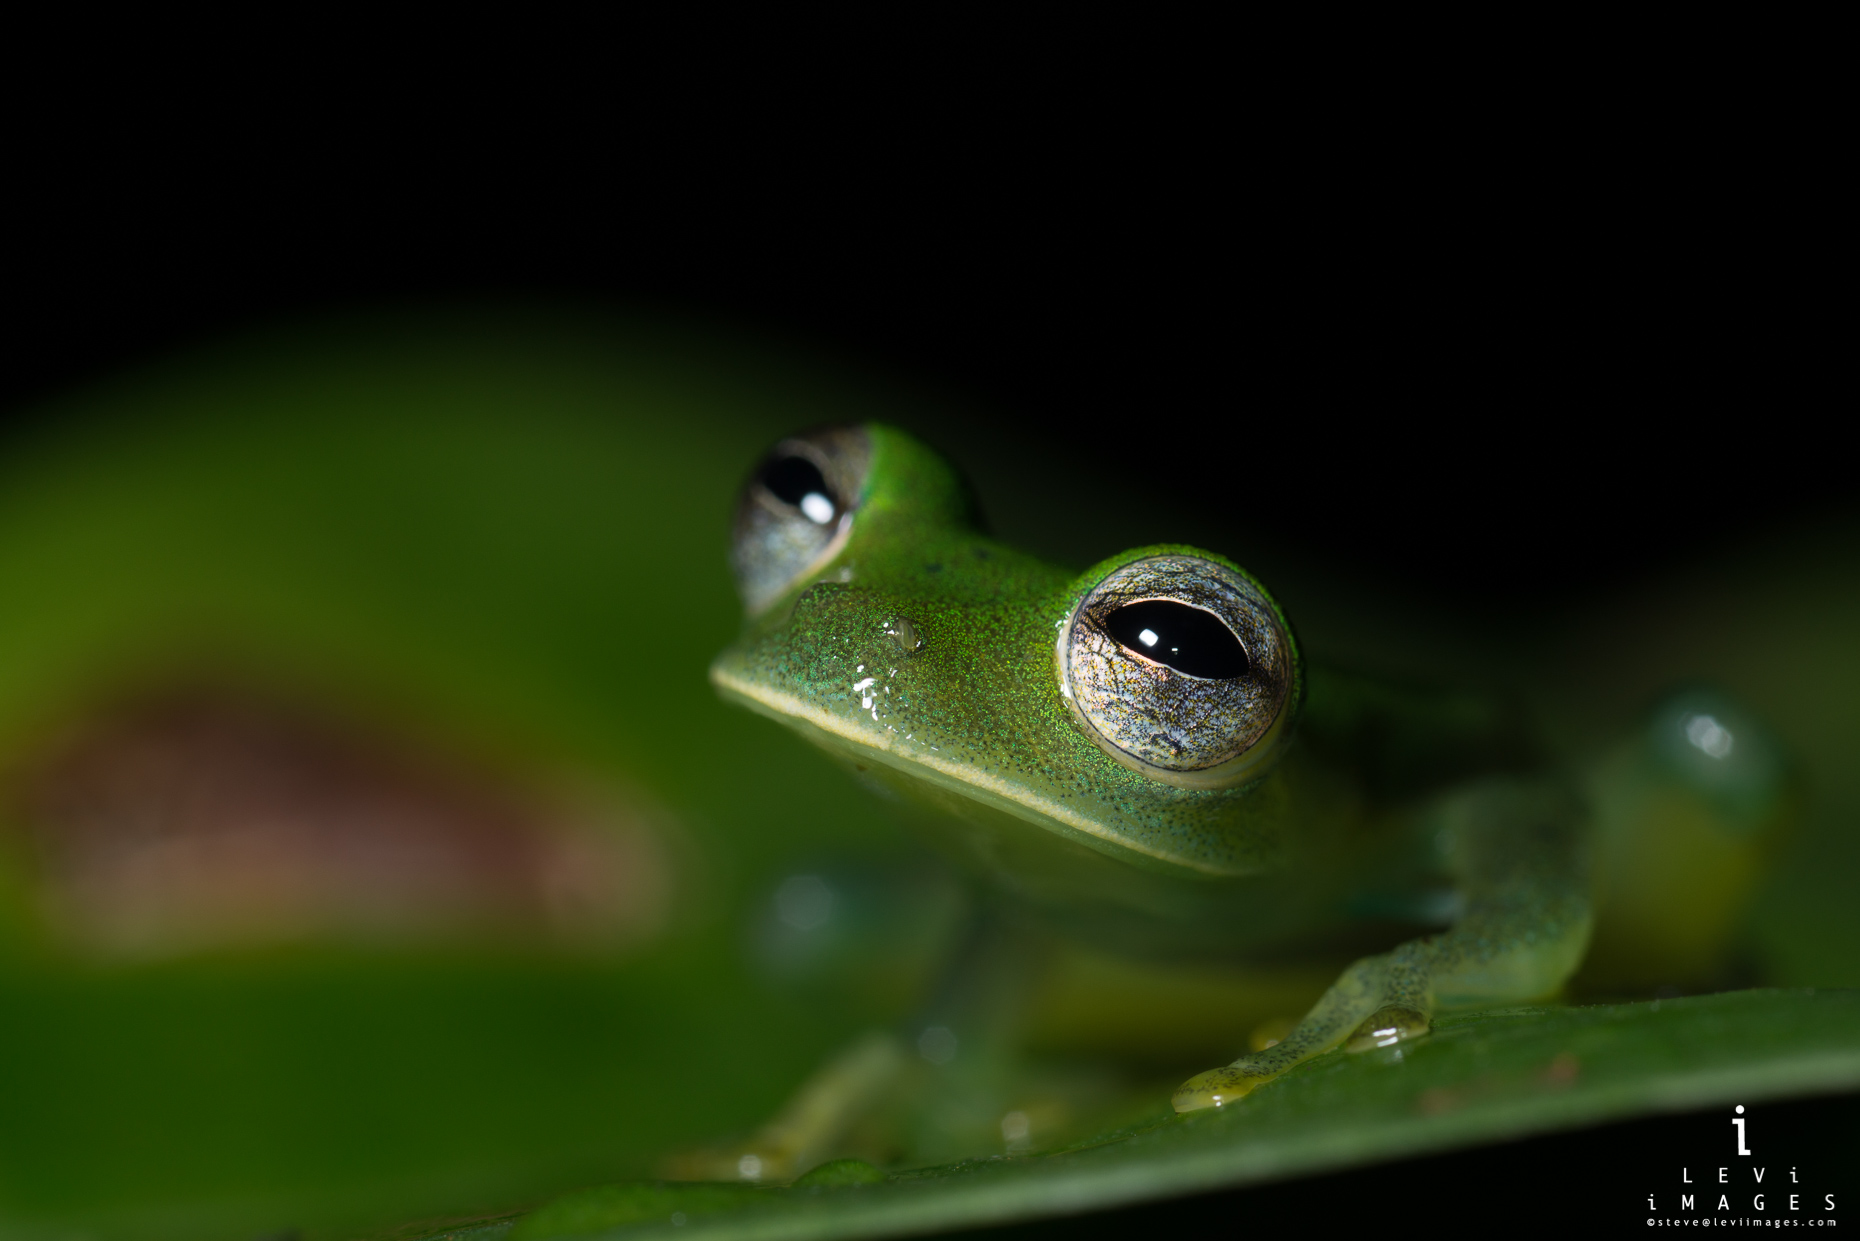 Granular glass frog (Cochranella granulosa) on leaf. Costa Rica